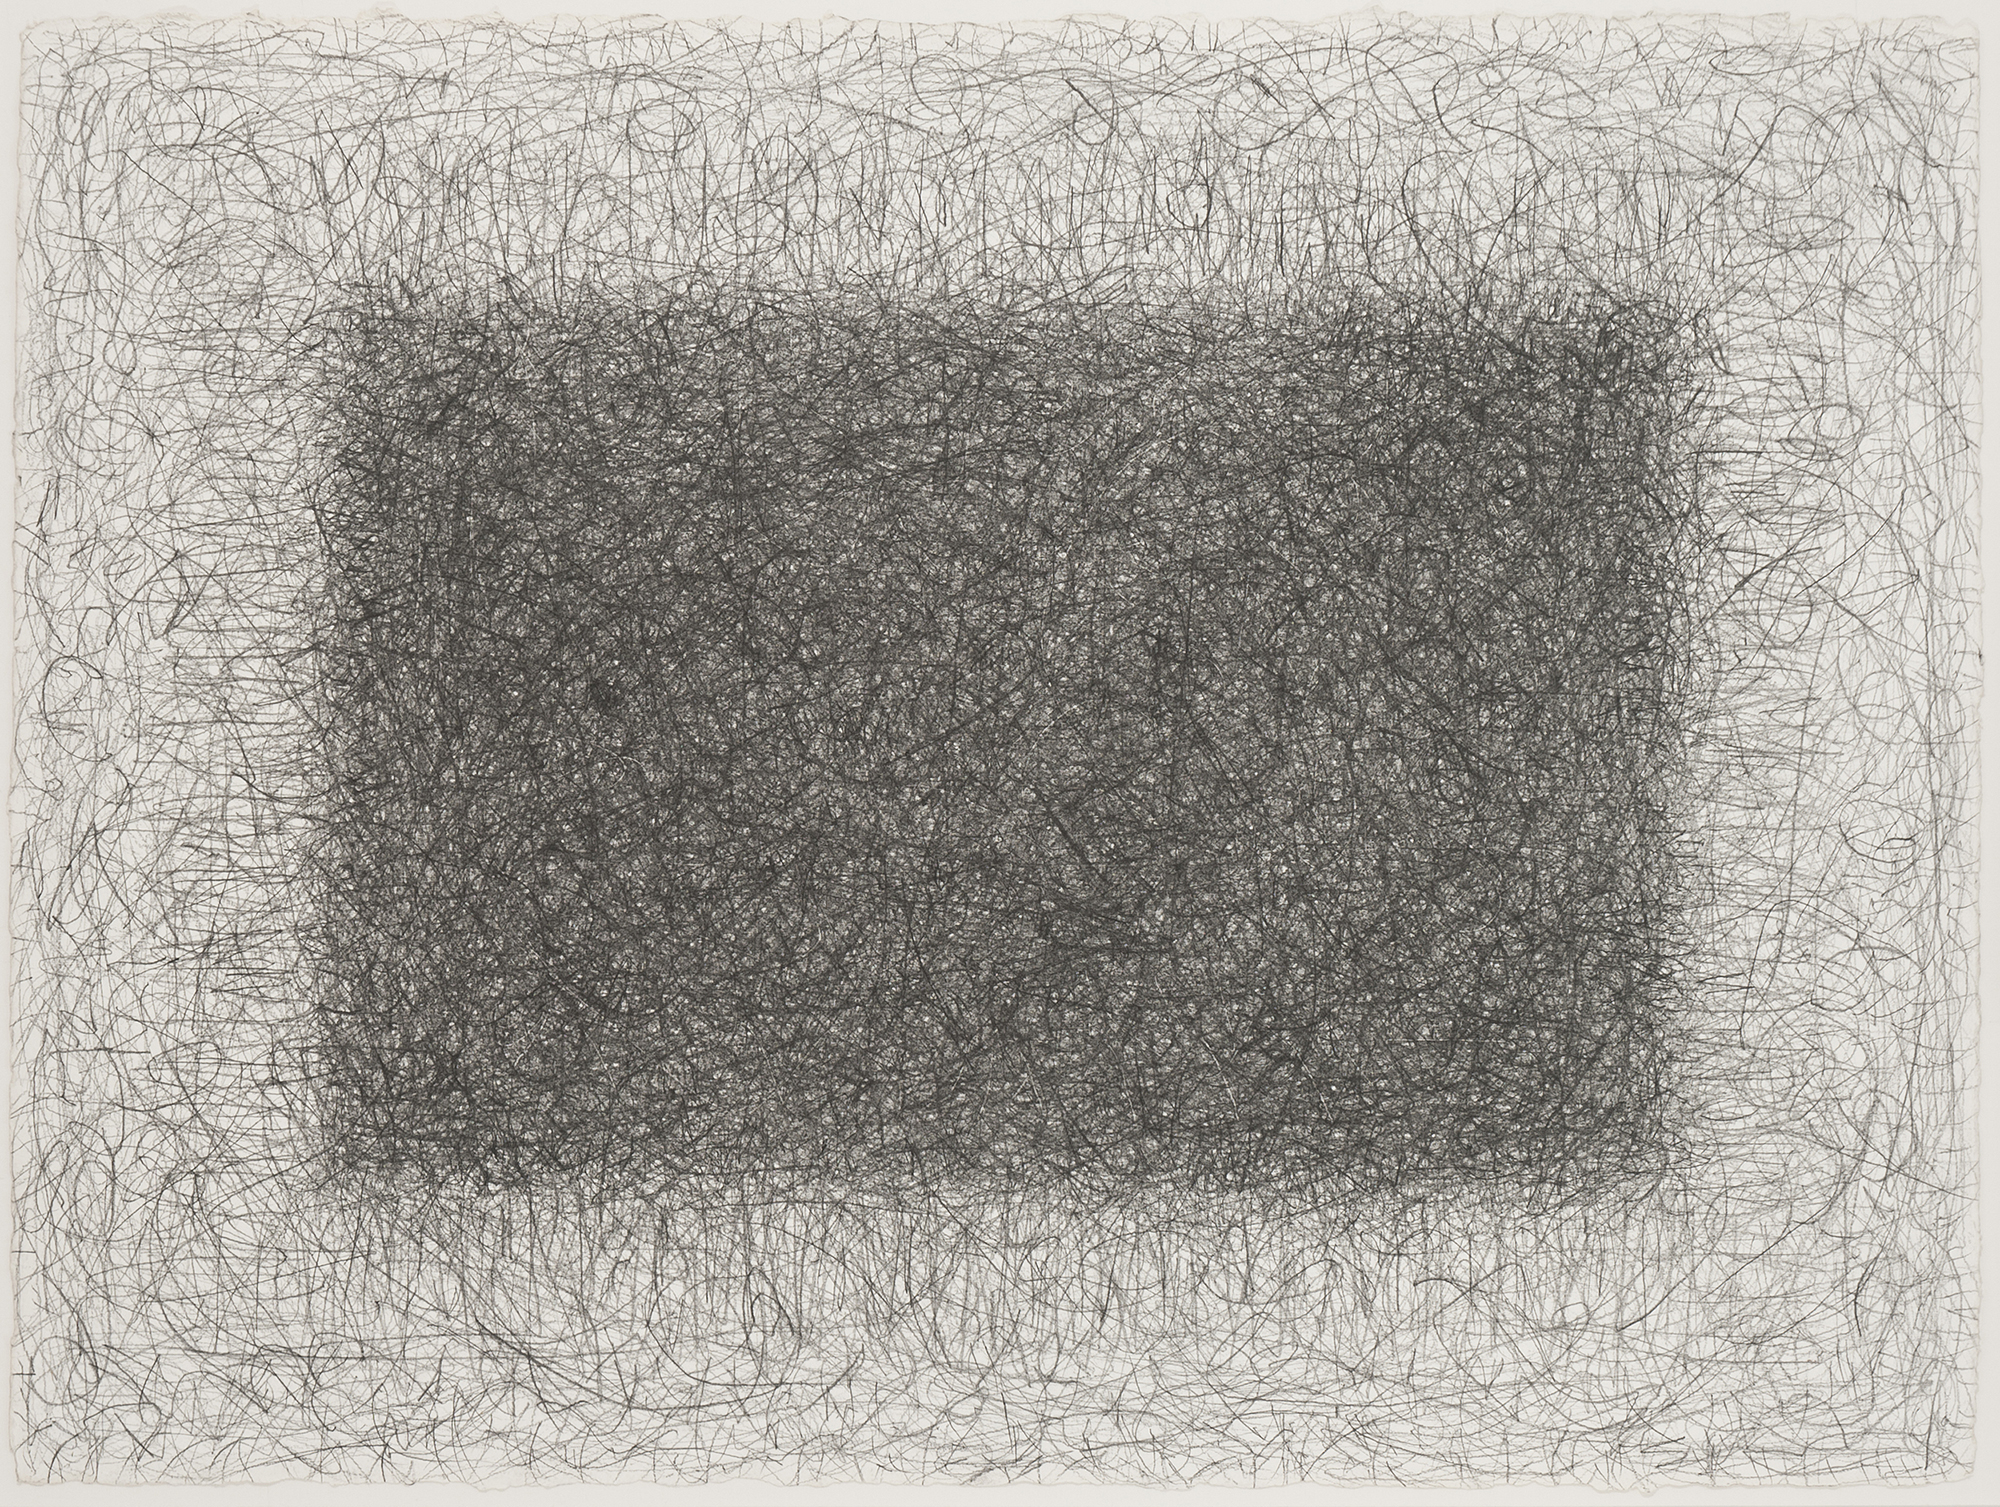 SOLD  Untitled, 1977  , graphite on heavy Arches paper, 22 1/2 x 30 3/8 inches